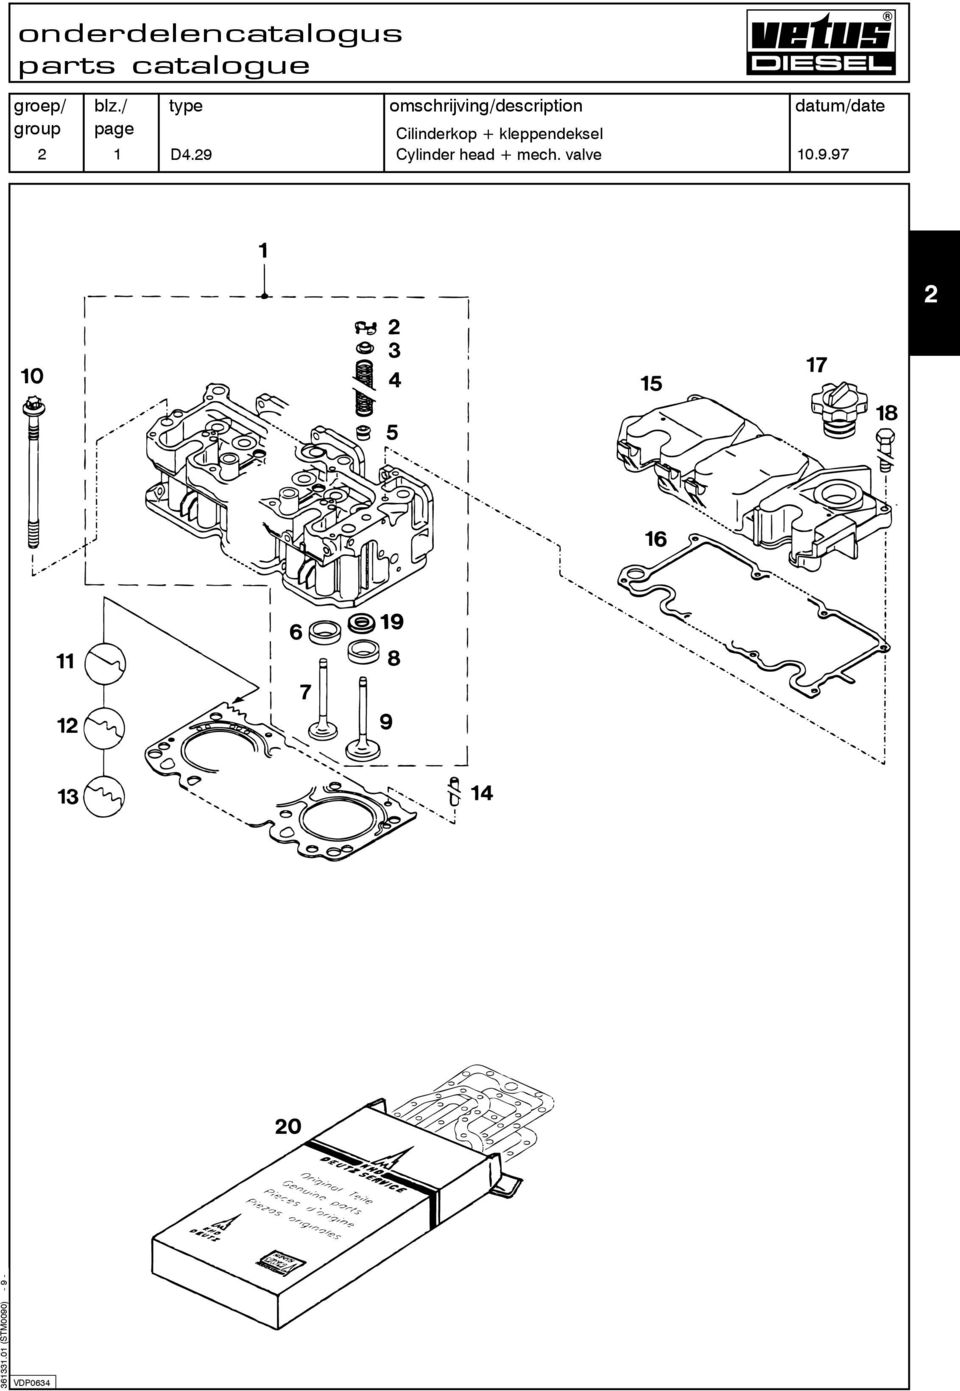 marine diesel engines d 4 29 dt4 29  parts catalogue